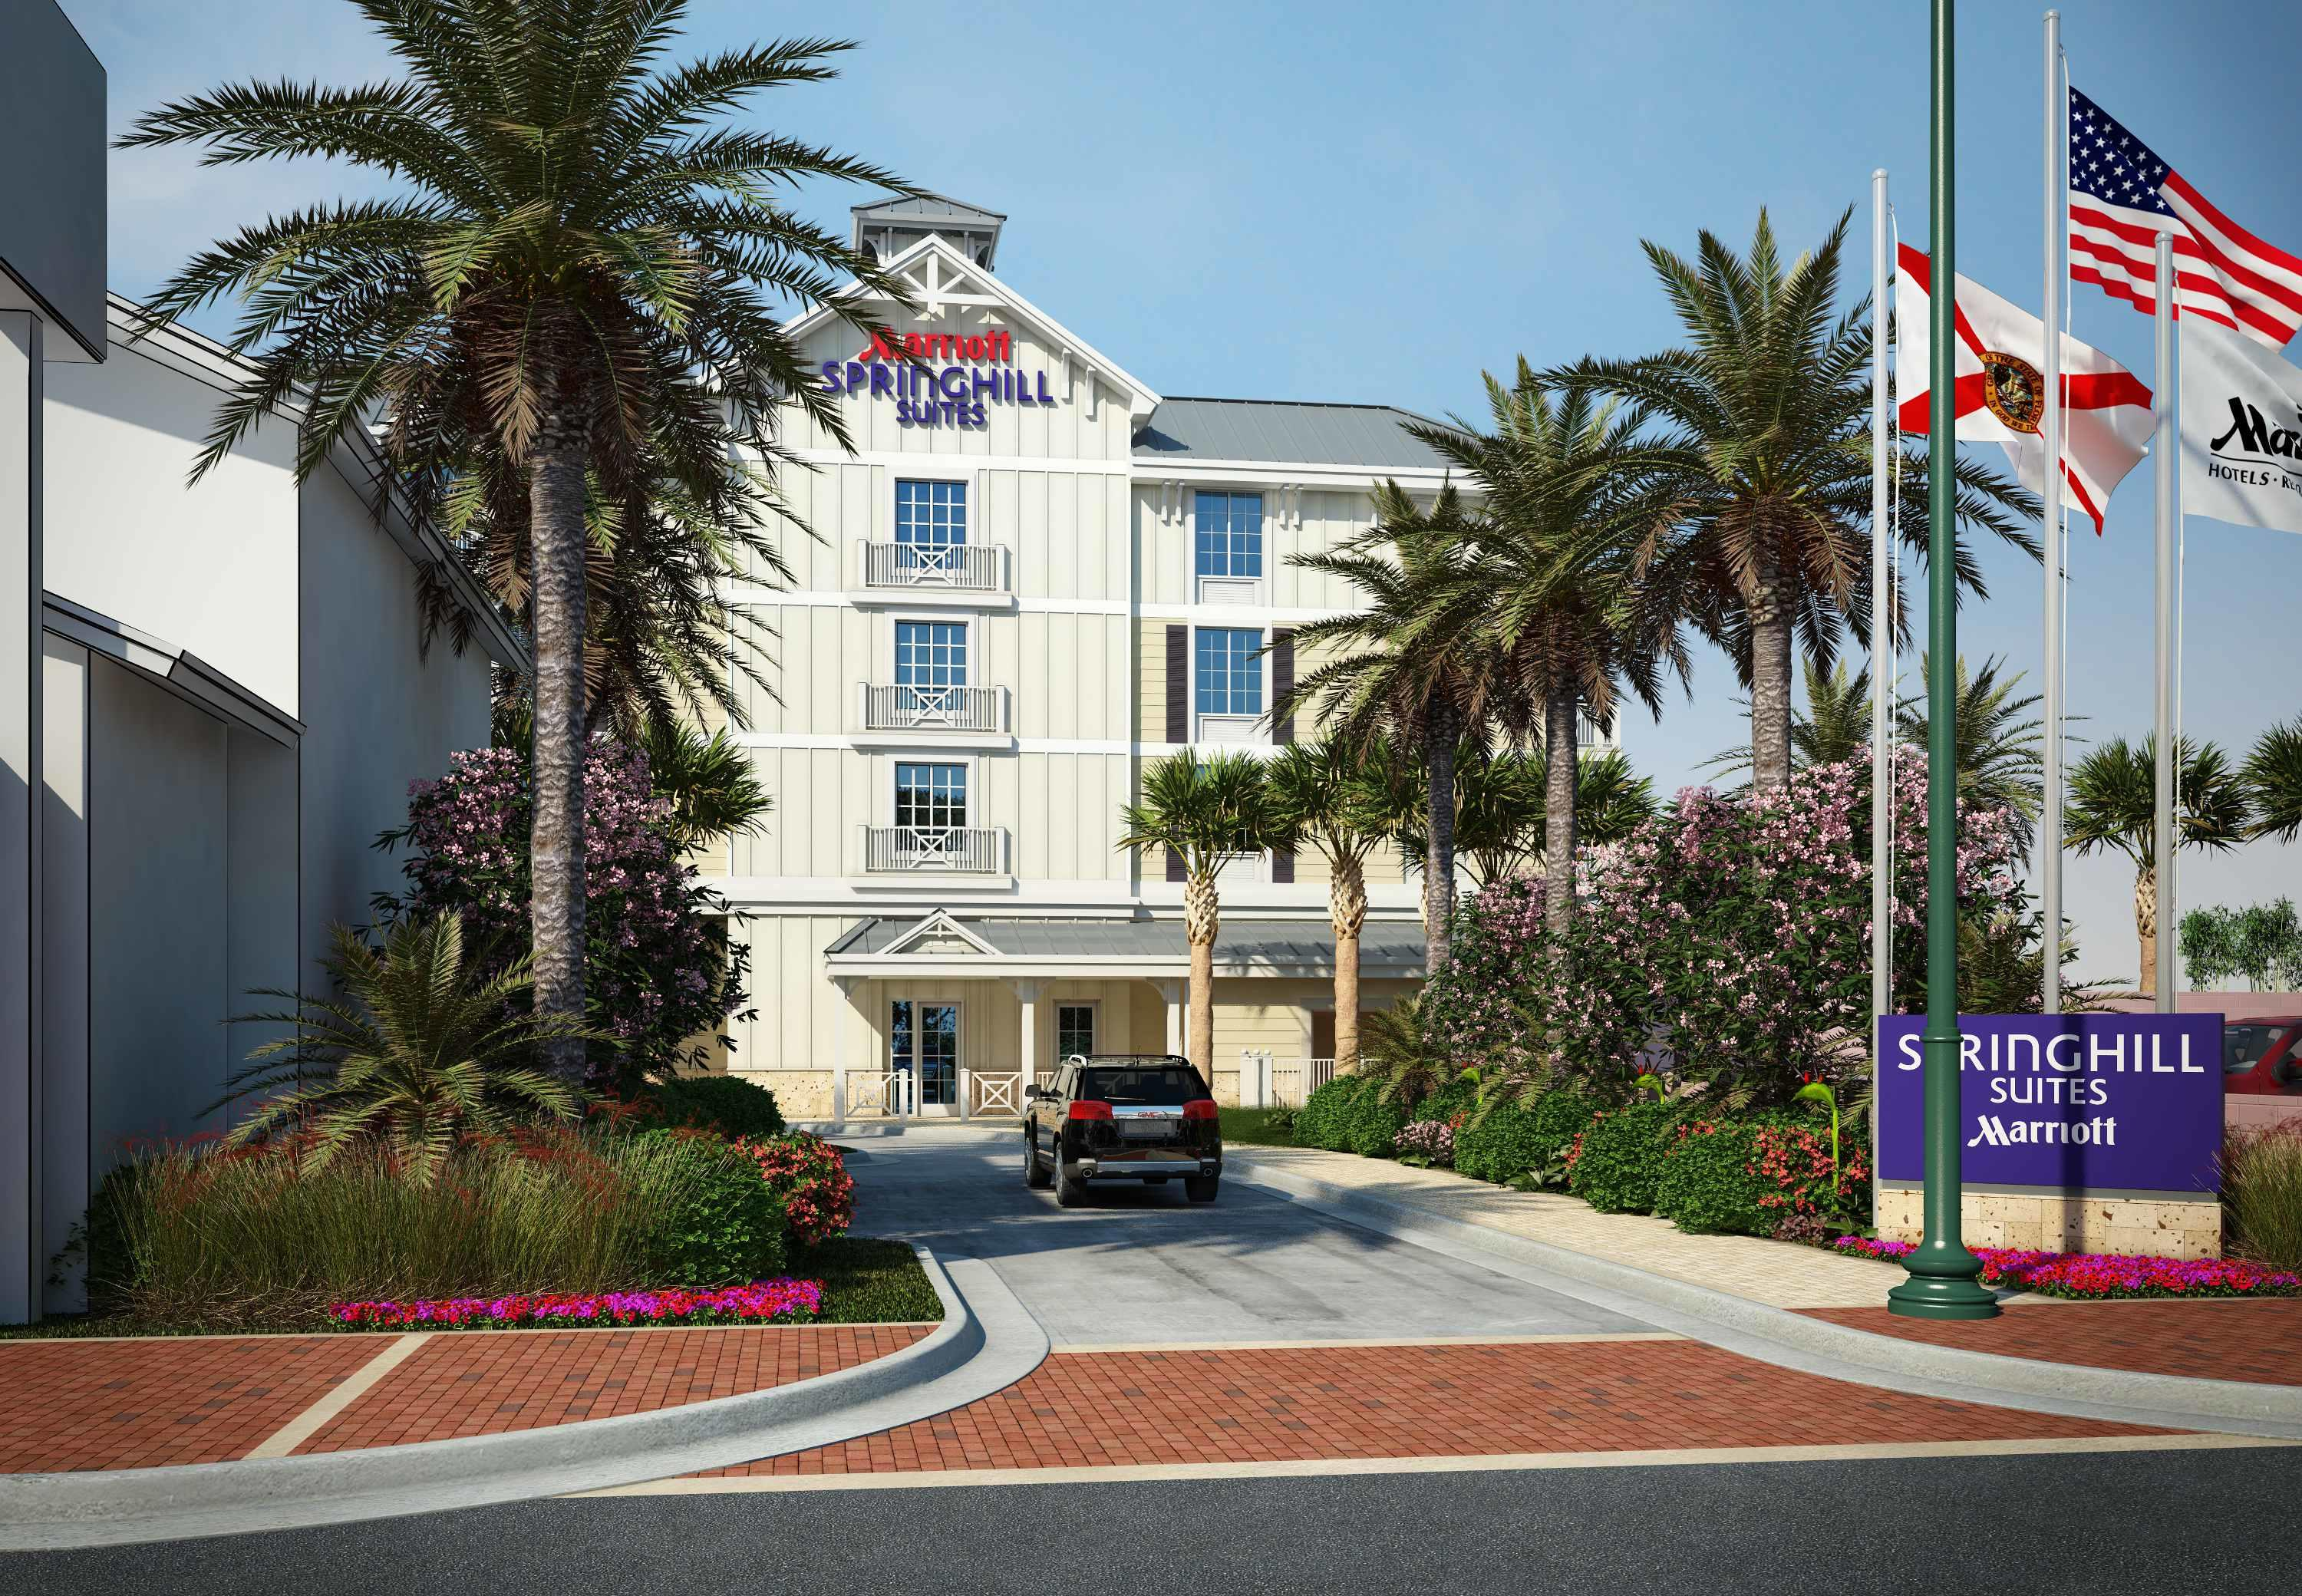 SpringHill Suites by Marriott New Smyrna Beach image 0